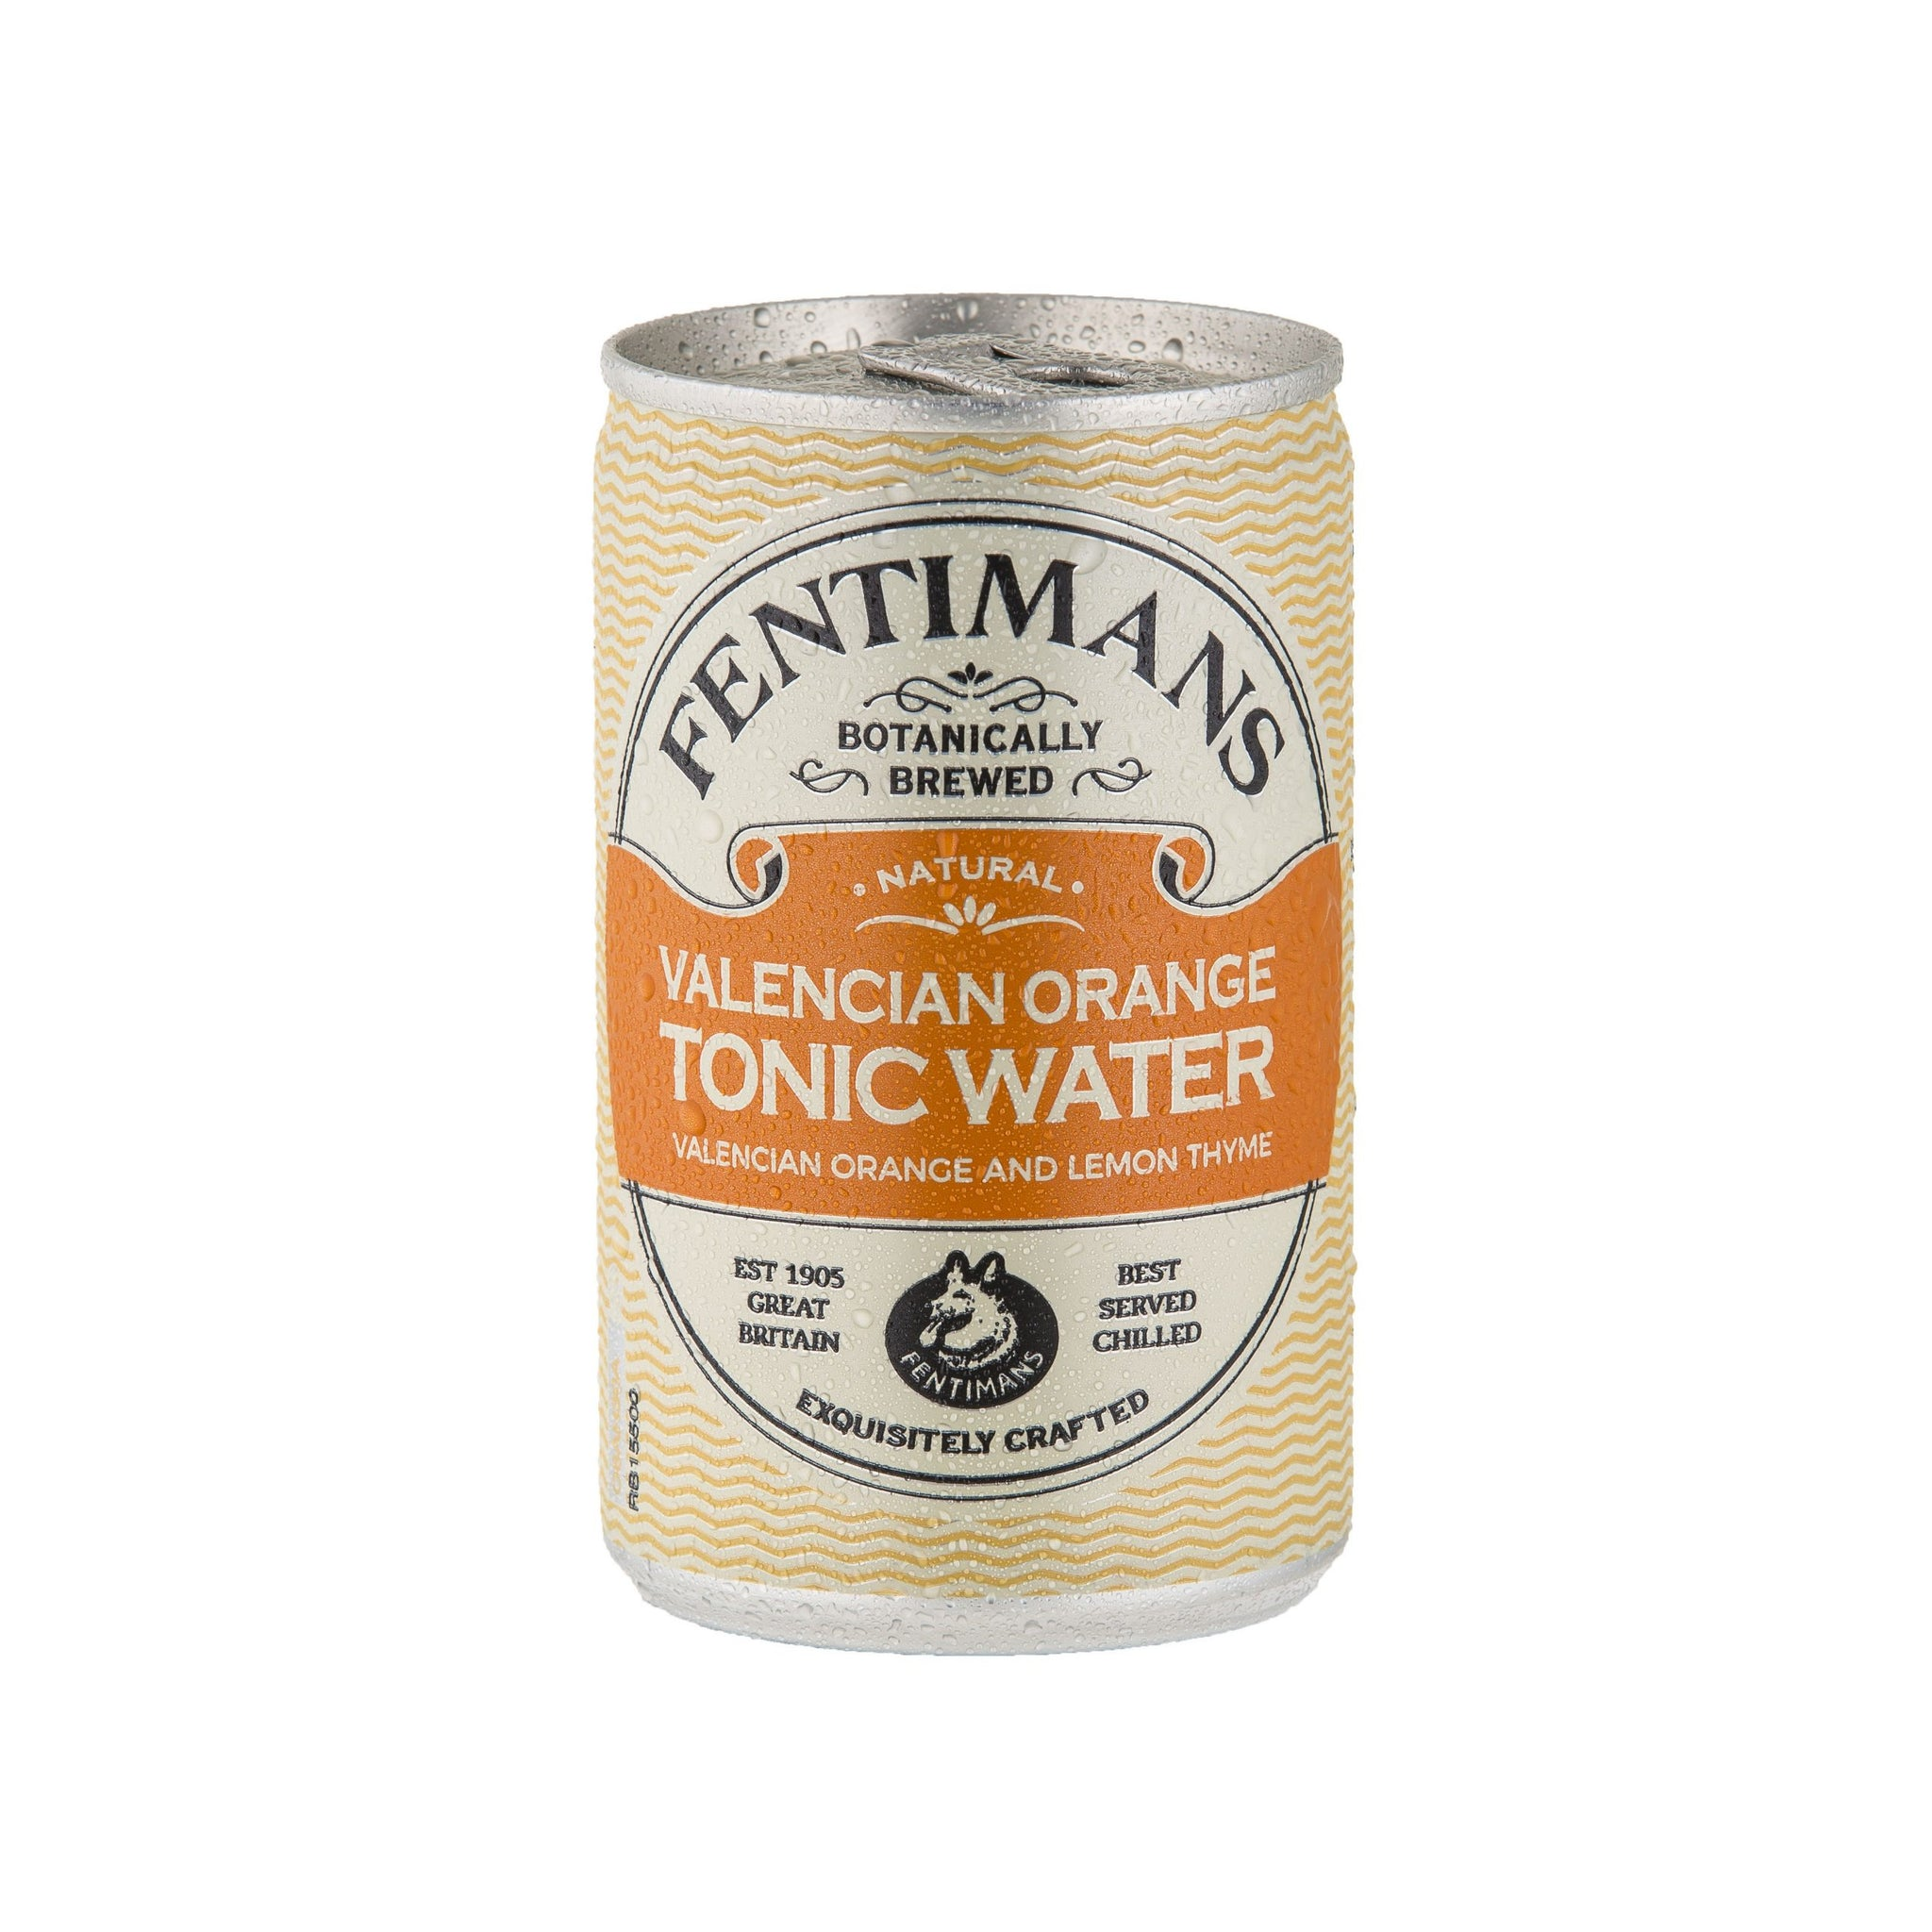 Fentimans Valencian Orange Tonic Water - 15cl